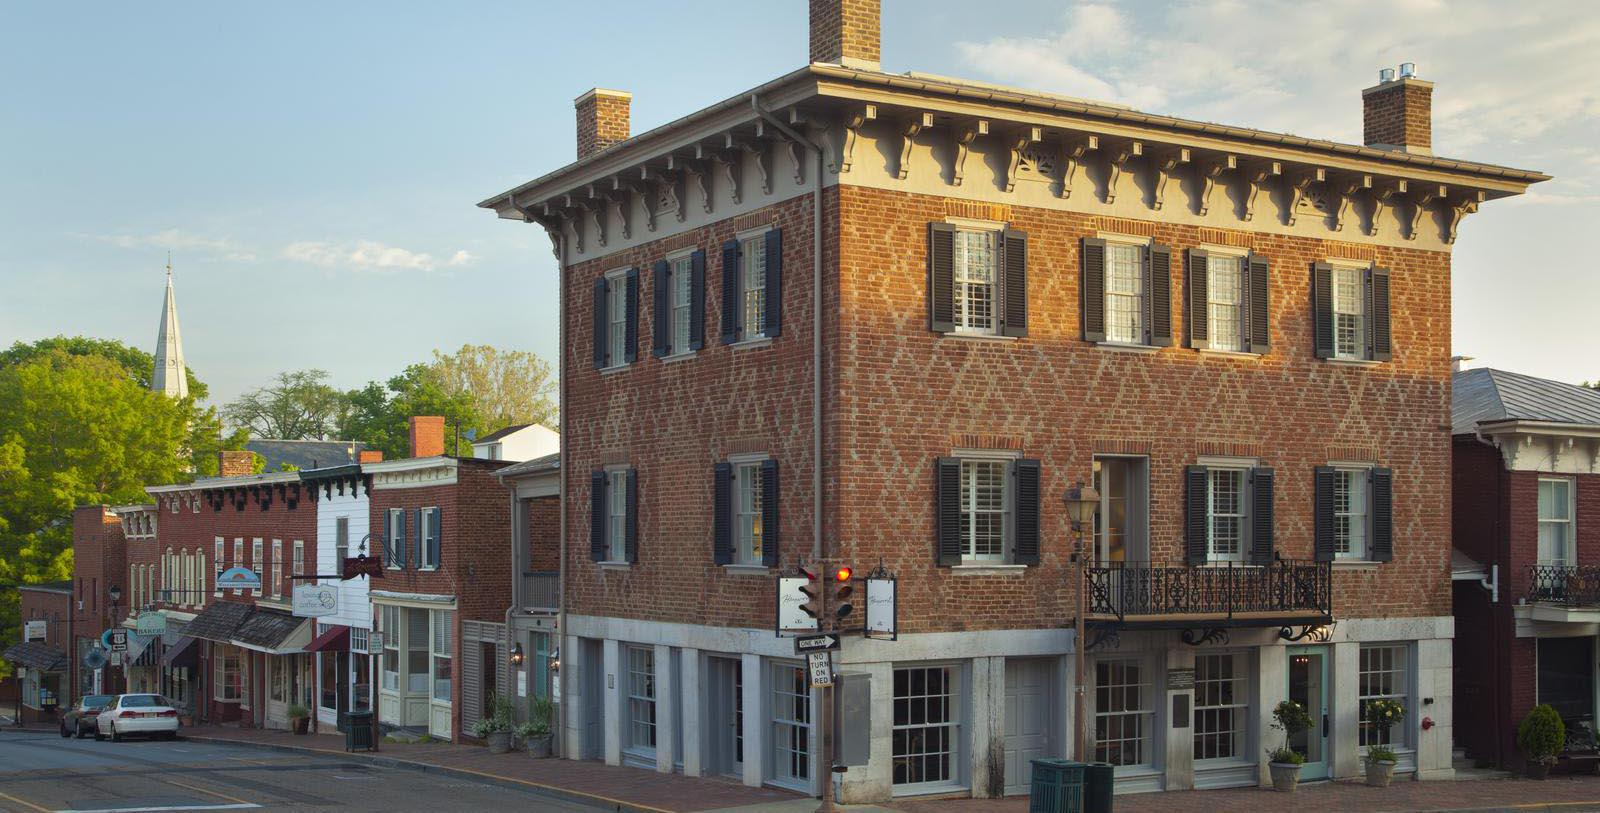 Image of Entrance The Georges, 1789, Member of Historic Hotels of America, in Lexington, Virginia, Overview